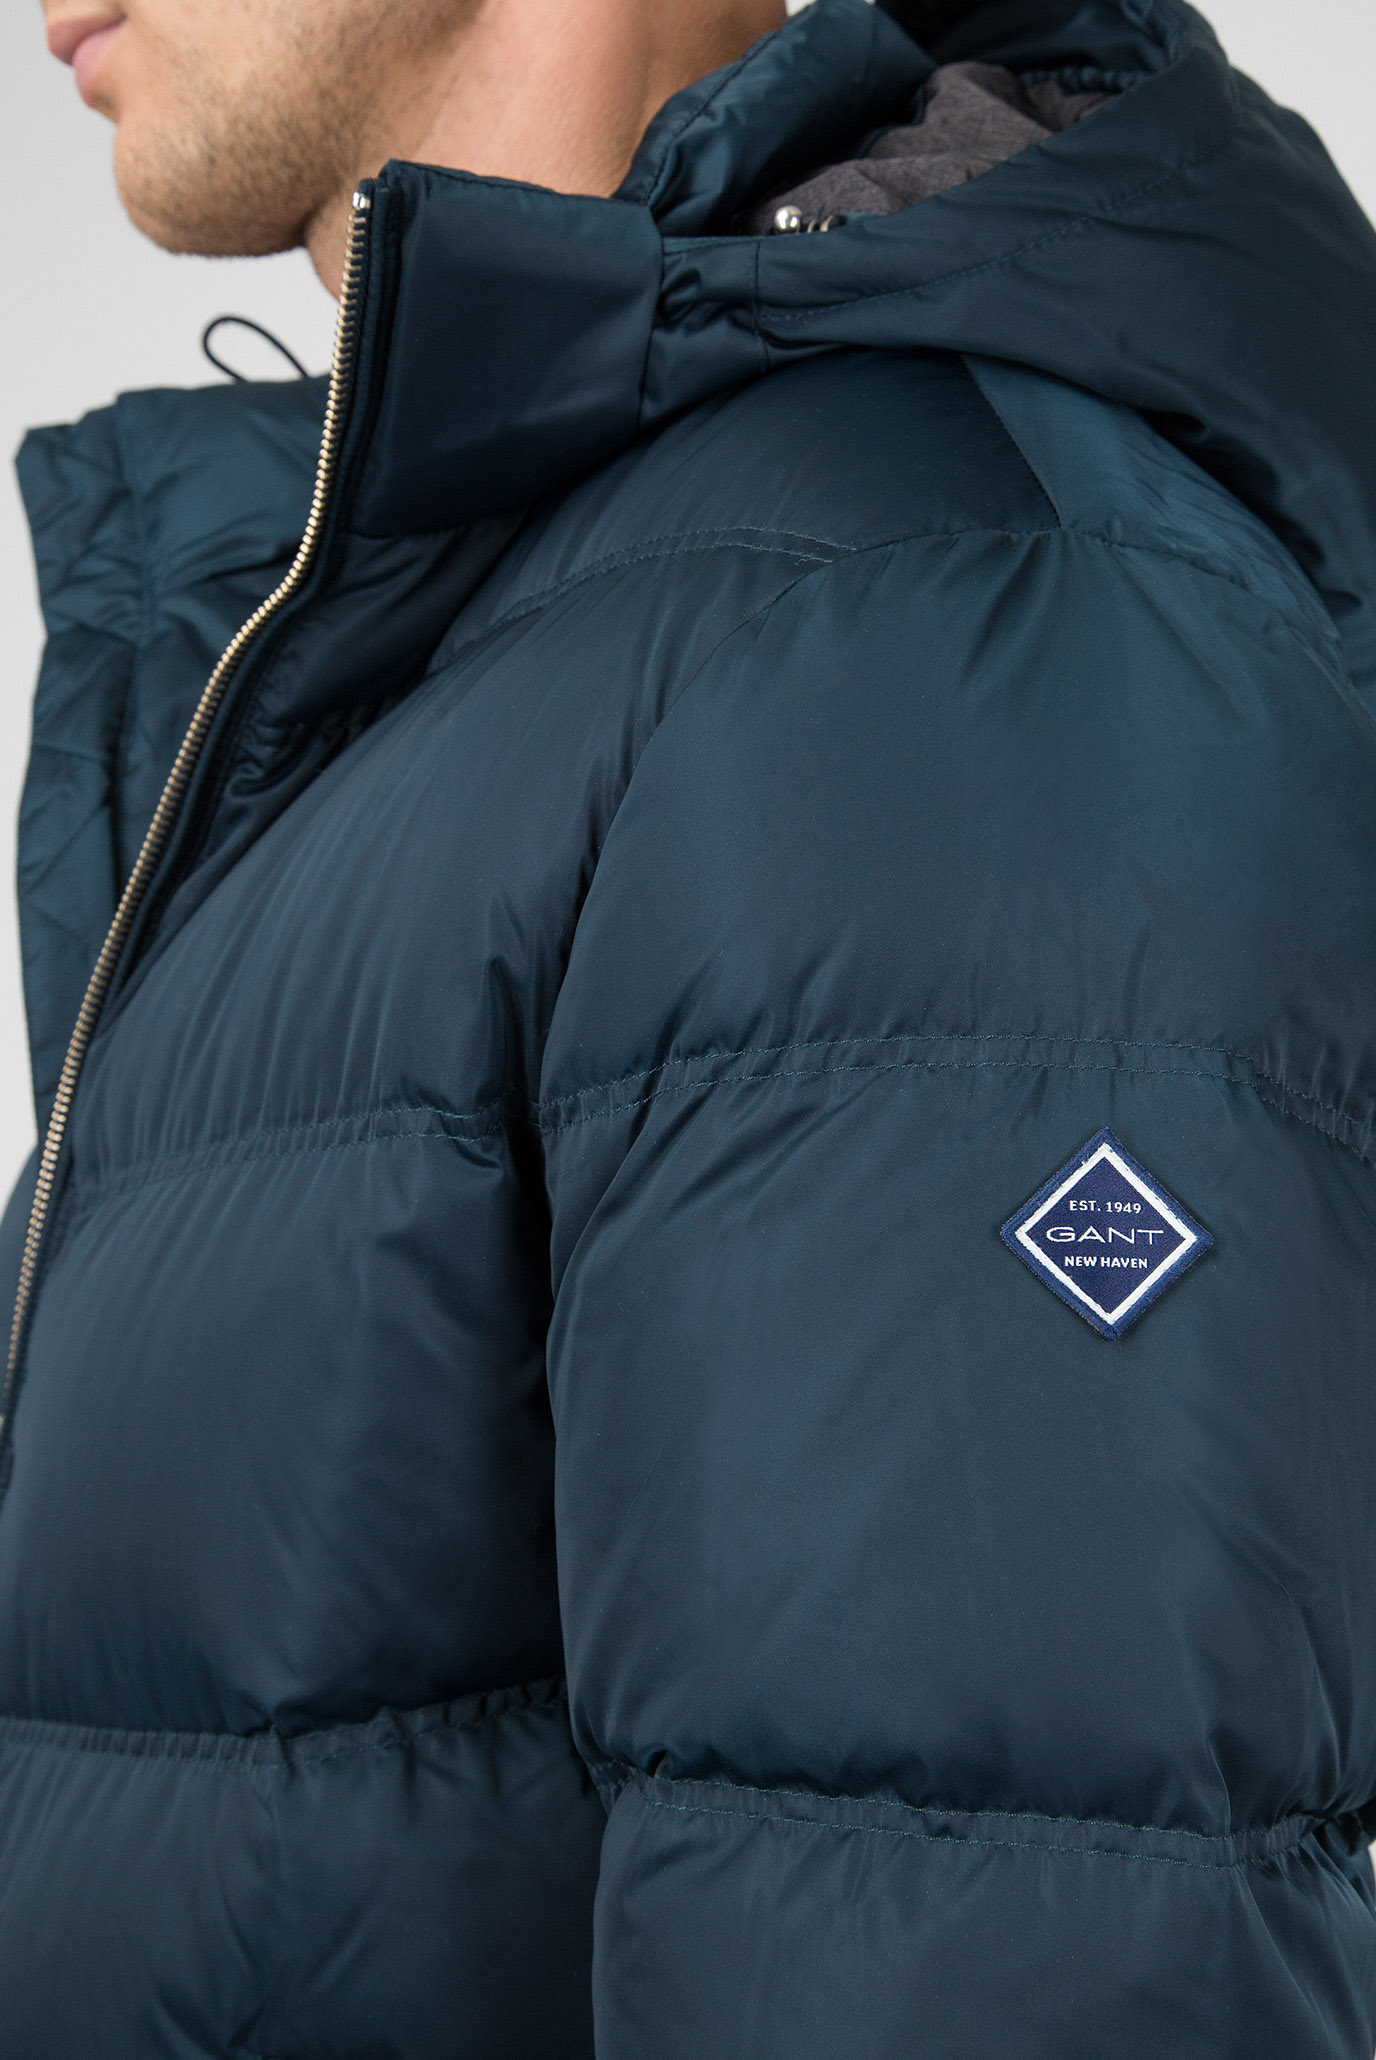 49e15adba23 Пуховик GANT O2. The Alta Down Jacket 7001542-438 XL Бирюзовый  (7325702535388)